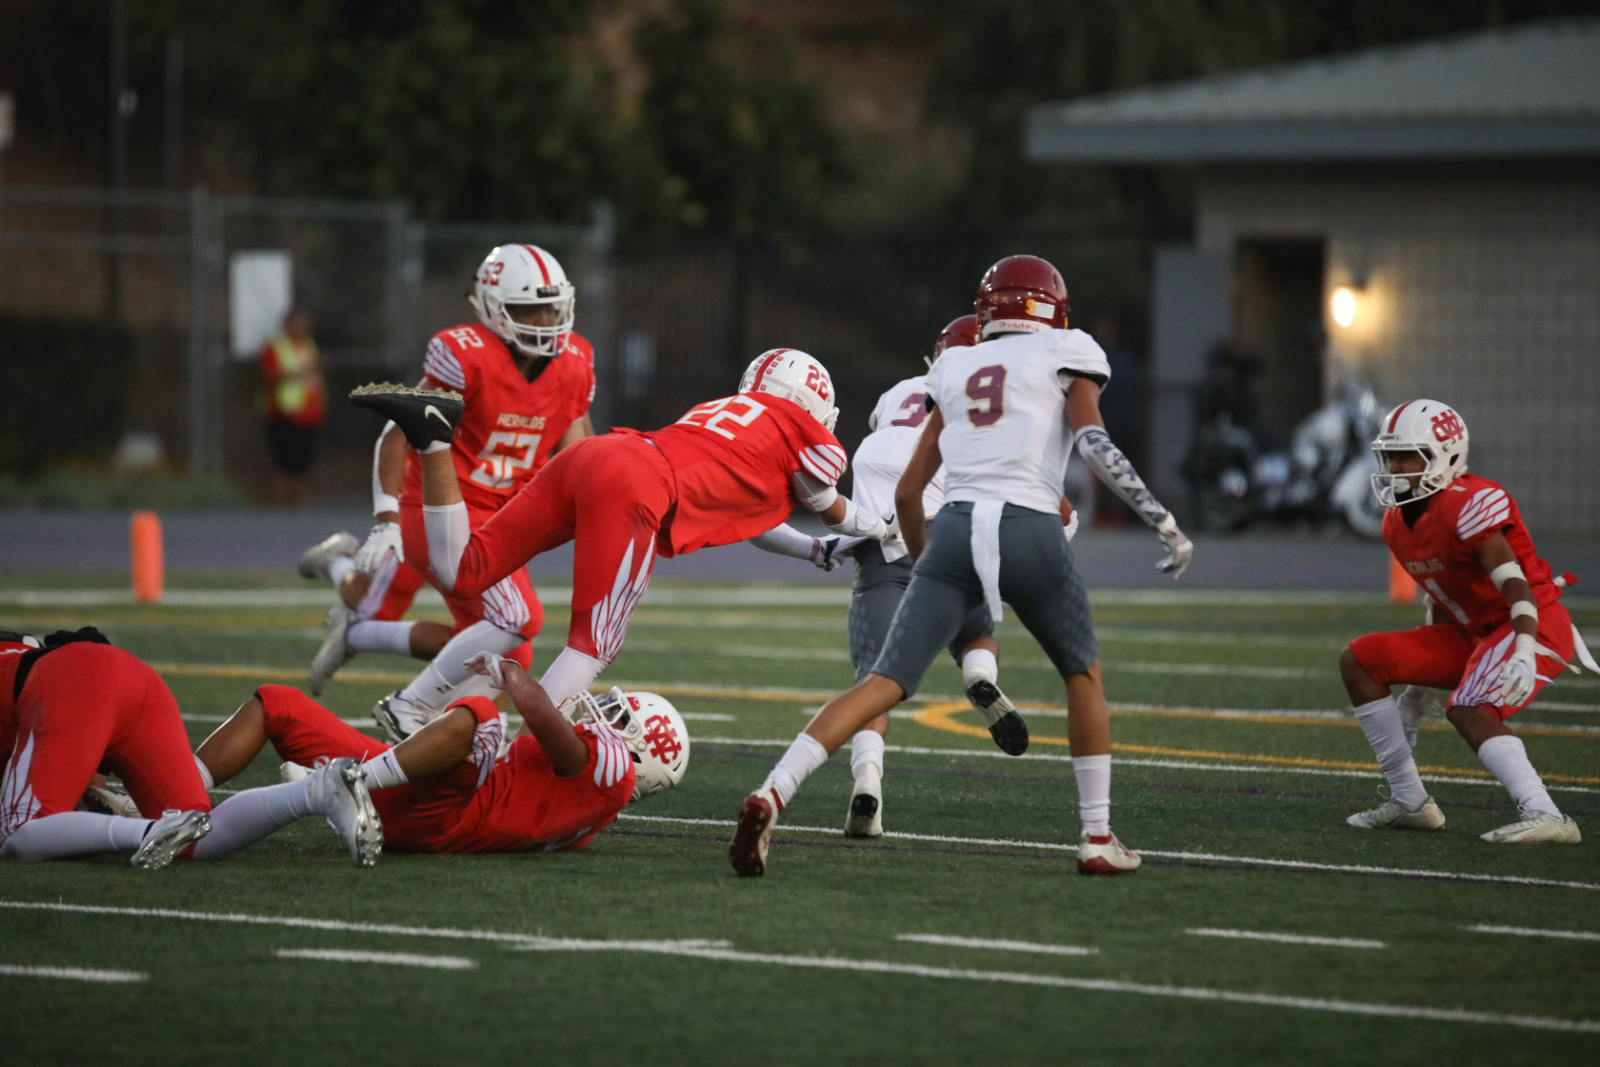 WCHS Football vs. Cantwell Pictures (Volume 5)